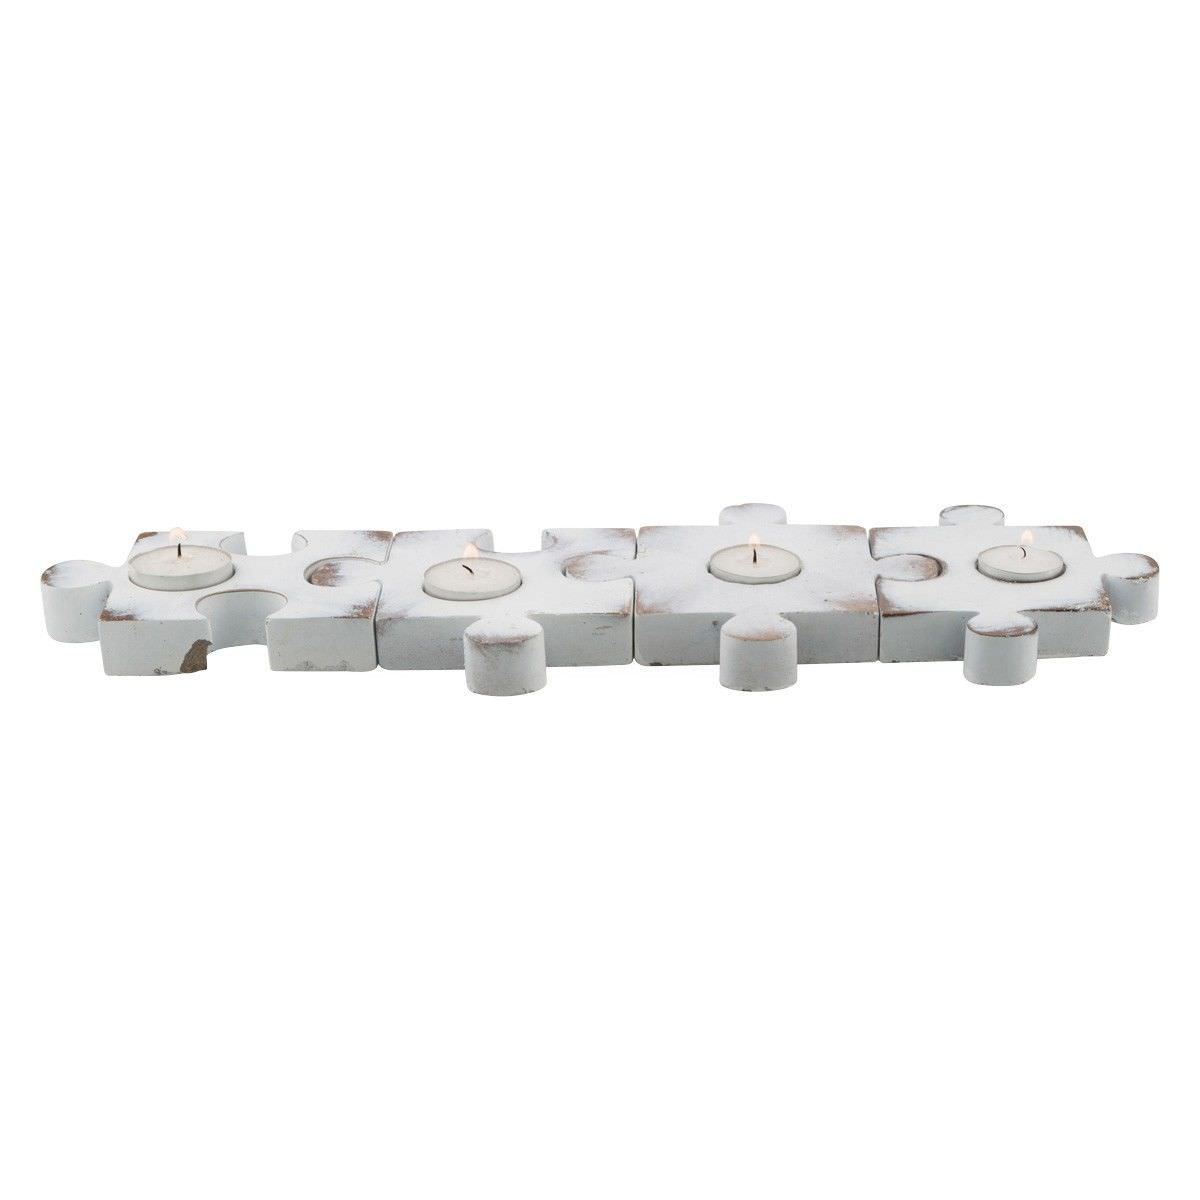 Kona 4 Piece Concrete Puzzle Tealight Holder Set, Distressed White